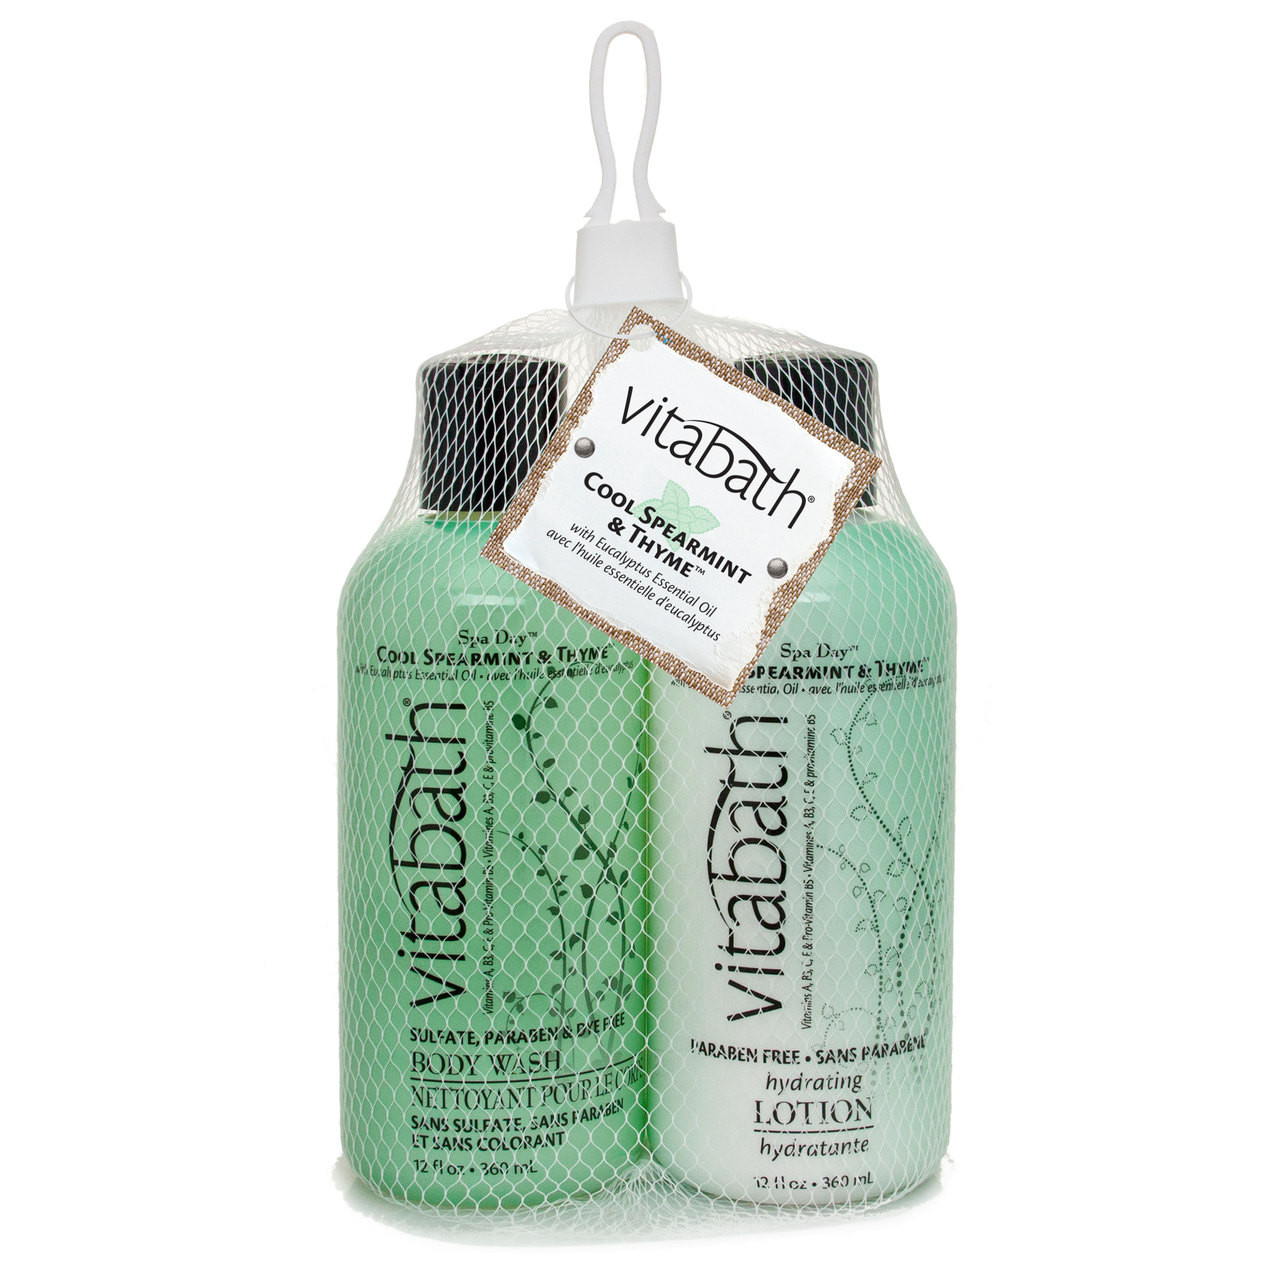 Cool Spearmint & Thyme™ - Fragrance Collection | Vitabath®